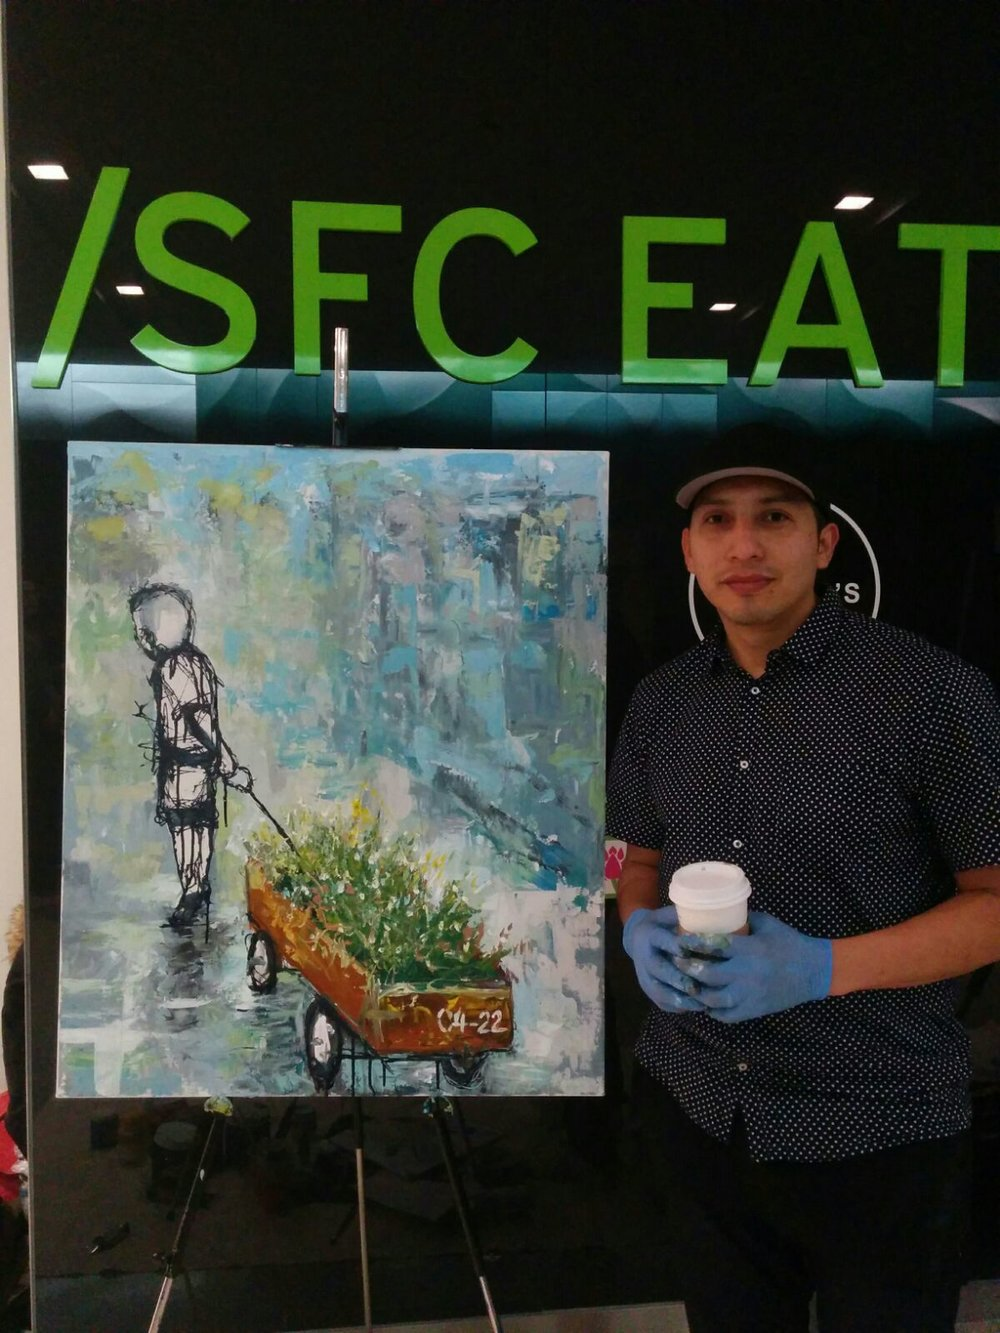 This piece was created at a live painting event at the SFC Eatery in the financial district to bring awareness around Earth Week. I wanted to highlight our responsibility of passing on a healthy world to our children and teaching them from when they are young.